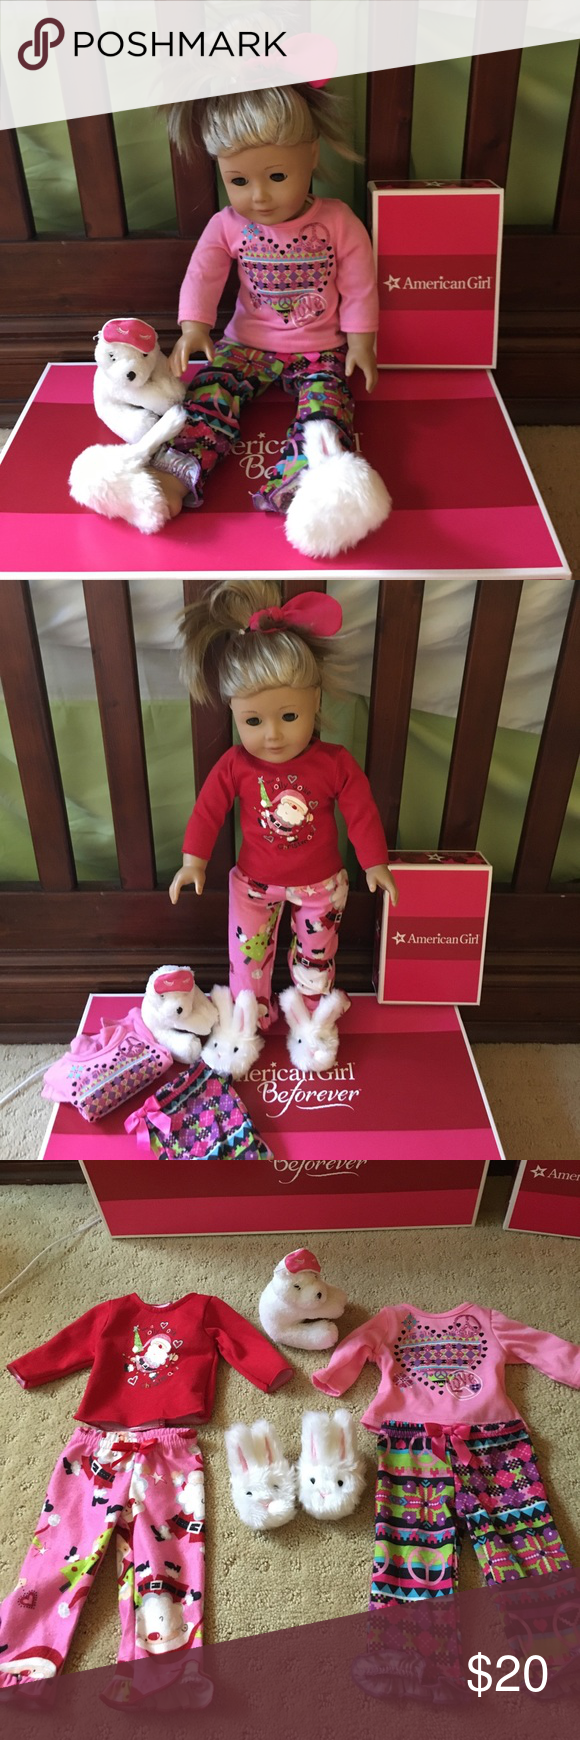 Set of two 18 inch doll pajamas. Plus 🐰 slippers A set of two 18 inch doll pajamas. Christmas Santa pjs and a peace pair. The includes the bunny slippers. My daughters American Girl dolls wore these. So cute! Dollie & Me Pajamas